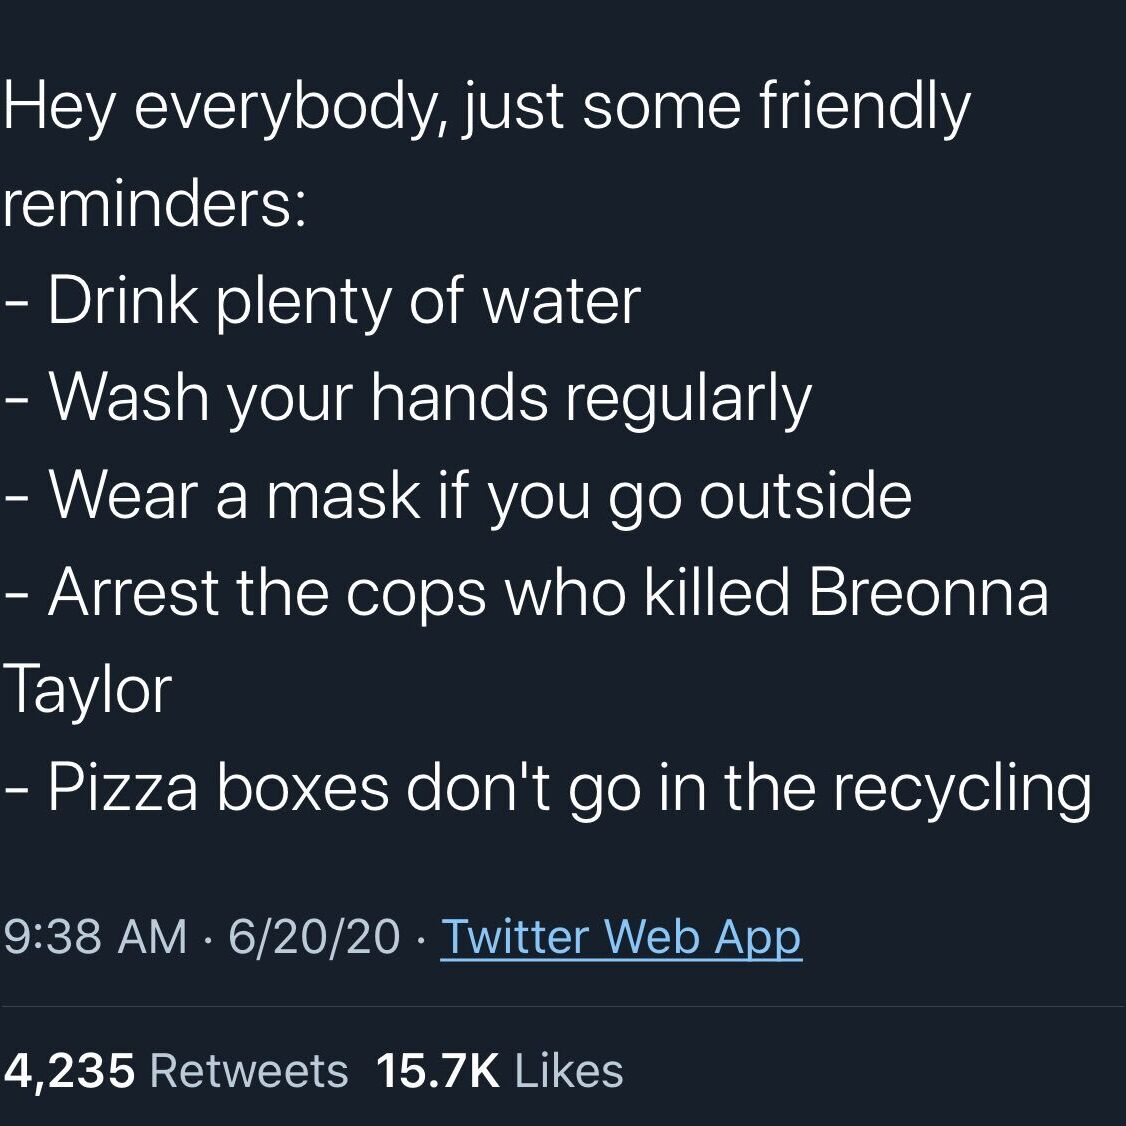 Scholar Sarah Jackson cautions against well-intentioned – but potentially harmful – memes that pose as unrelated content and suddenly feature Breonna Taylor's name.